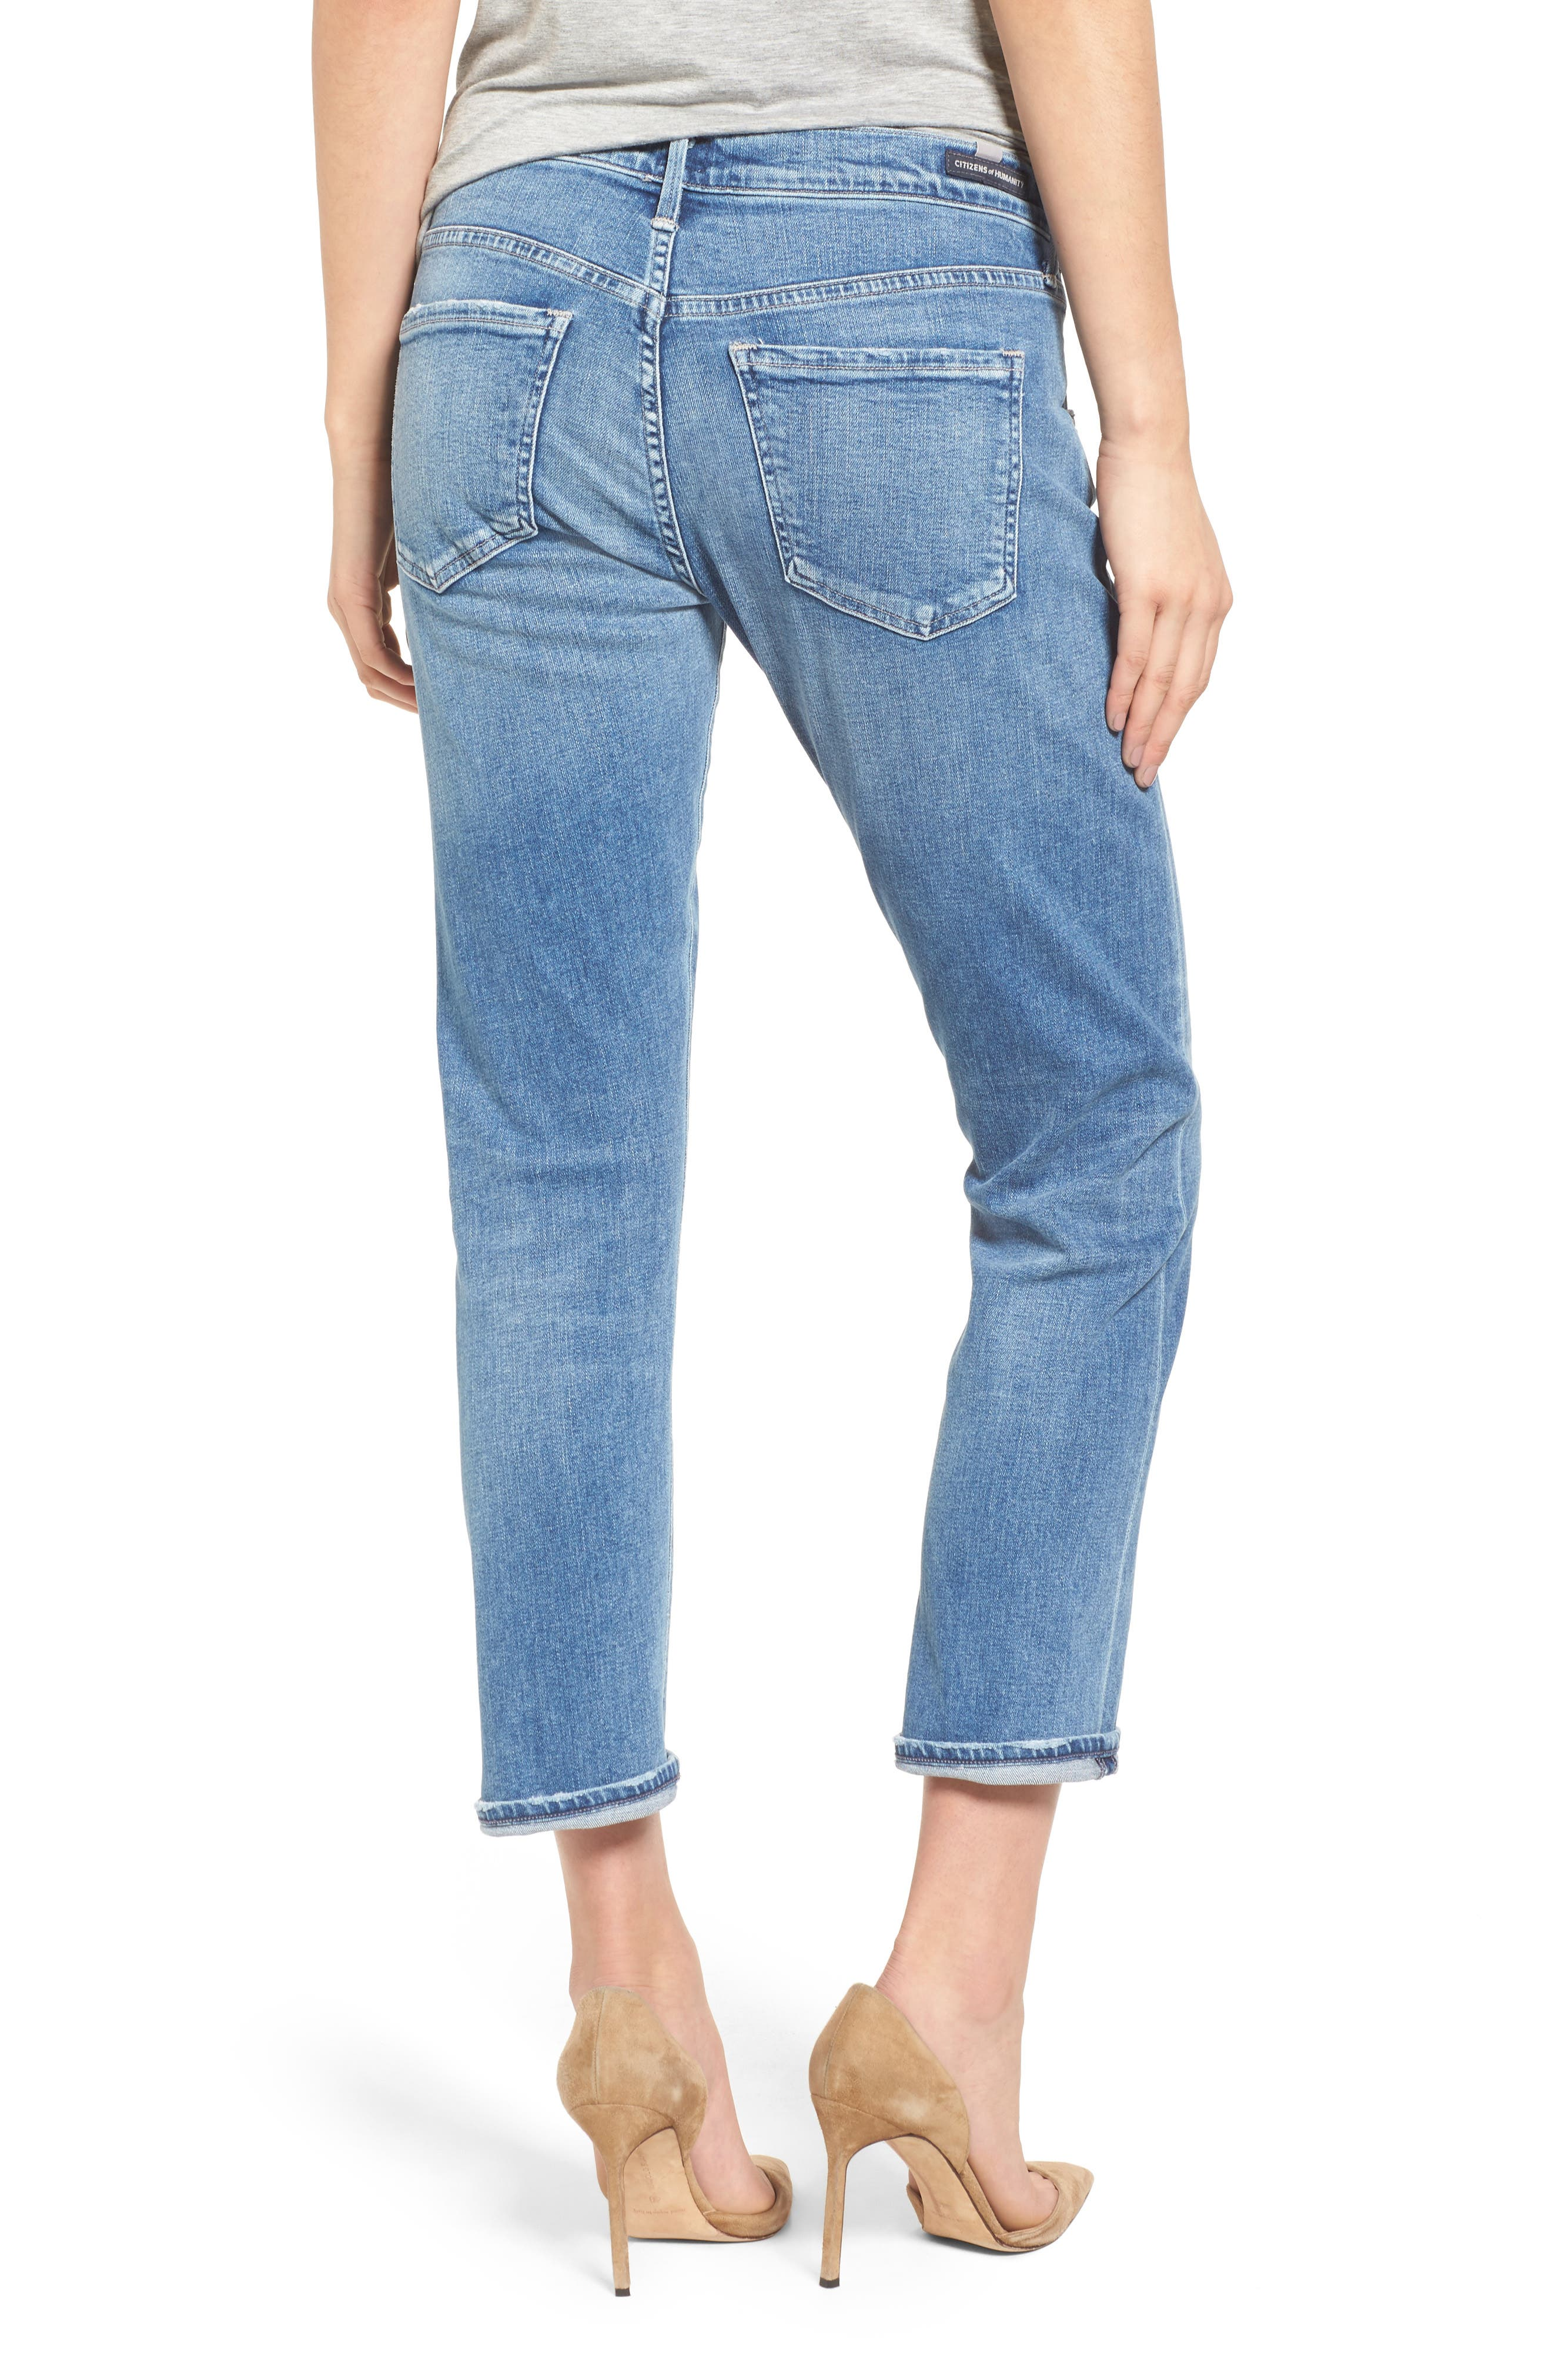 Emerson Slim Boyfriend Jeans,                             Alternate thumbnail 2, color,                             424